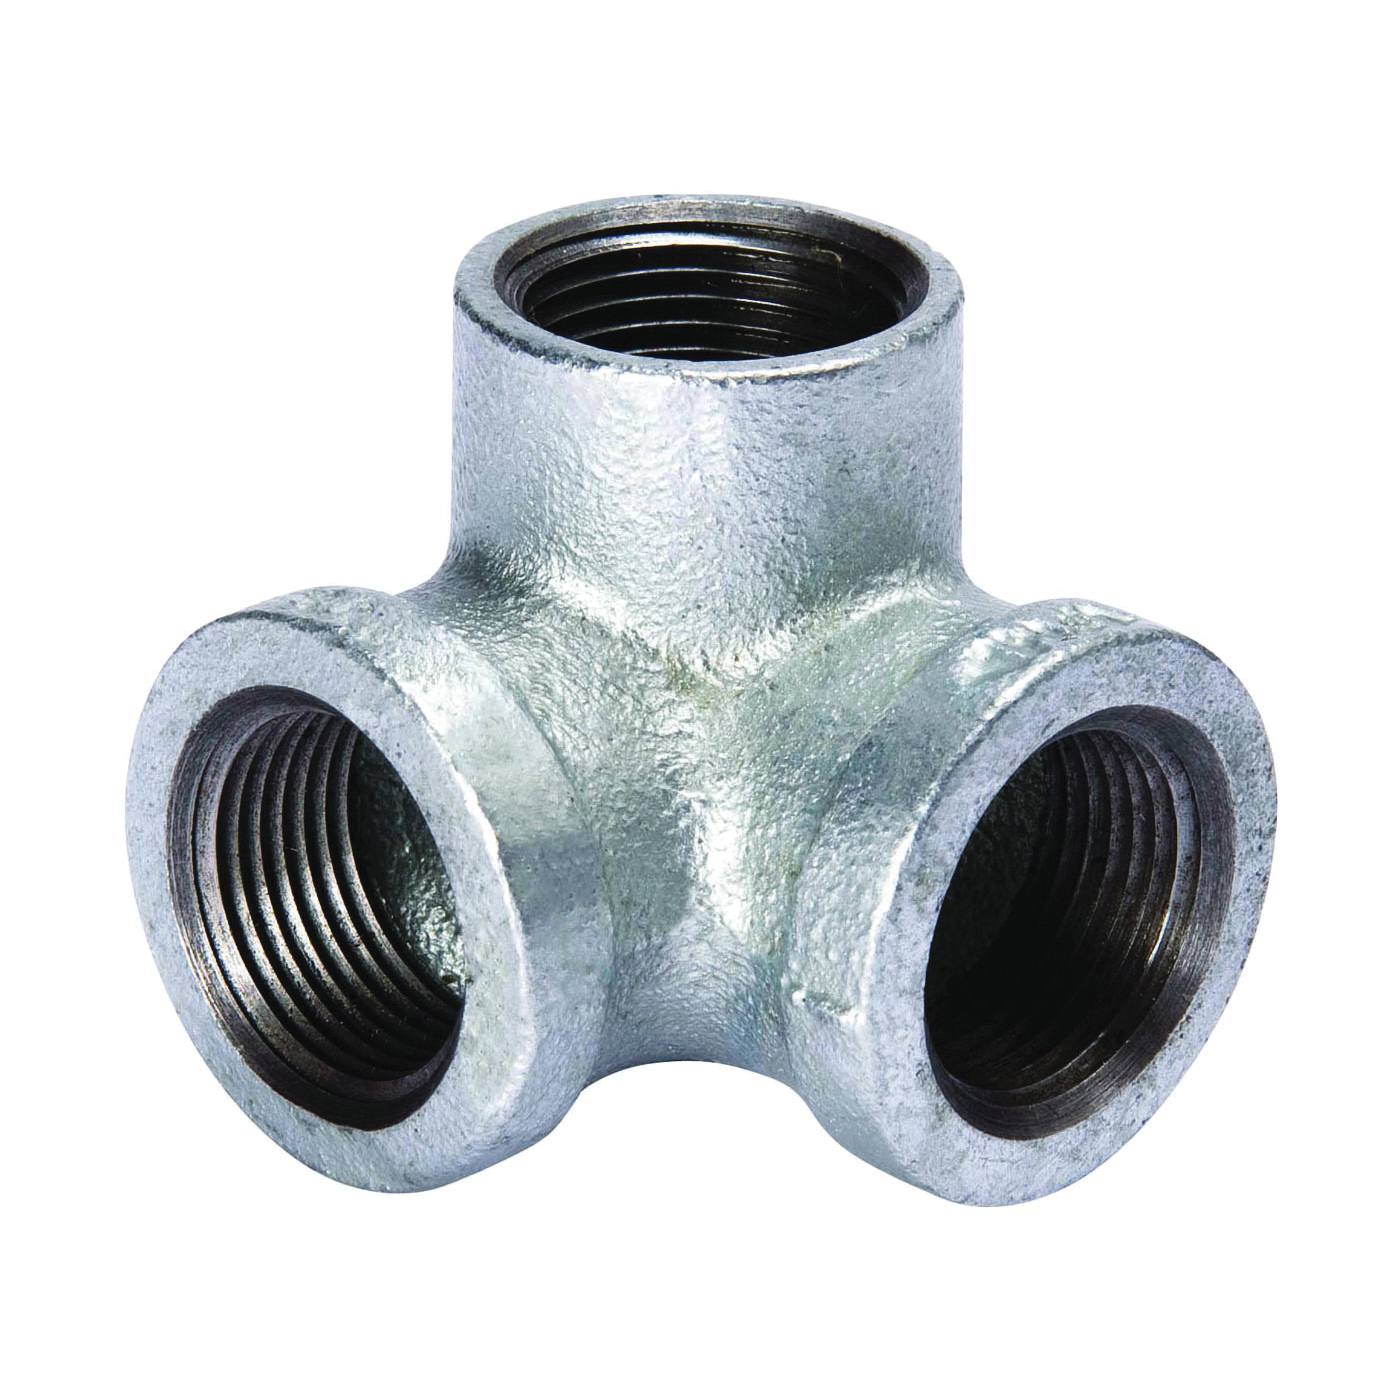 Picture of B & K 510-804HN Pipe Elbow, 3/4 in, Threaded, 90 deg Angle, 300 psi Pressure